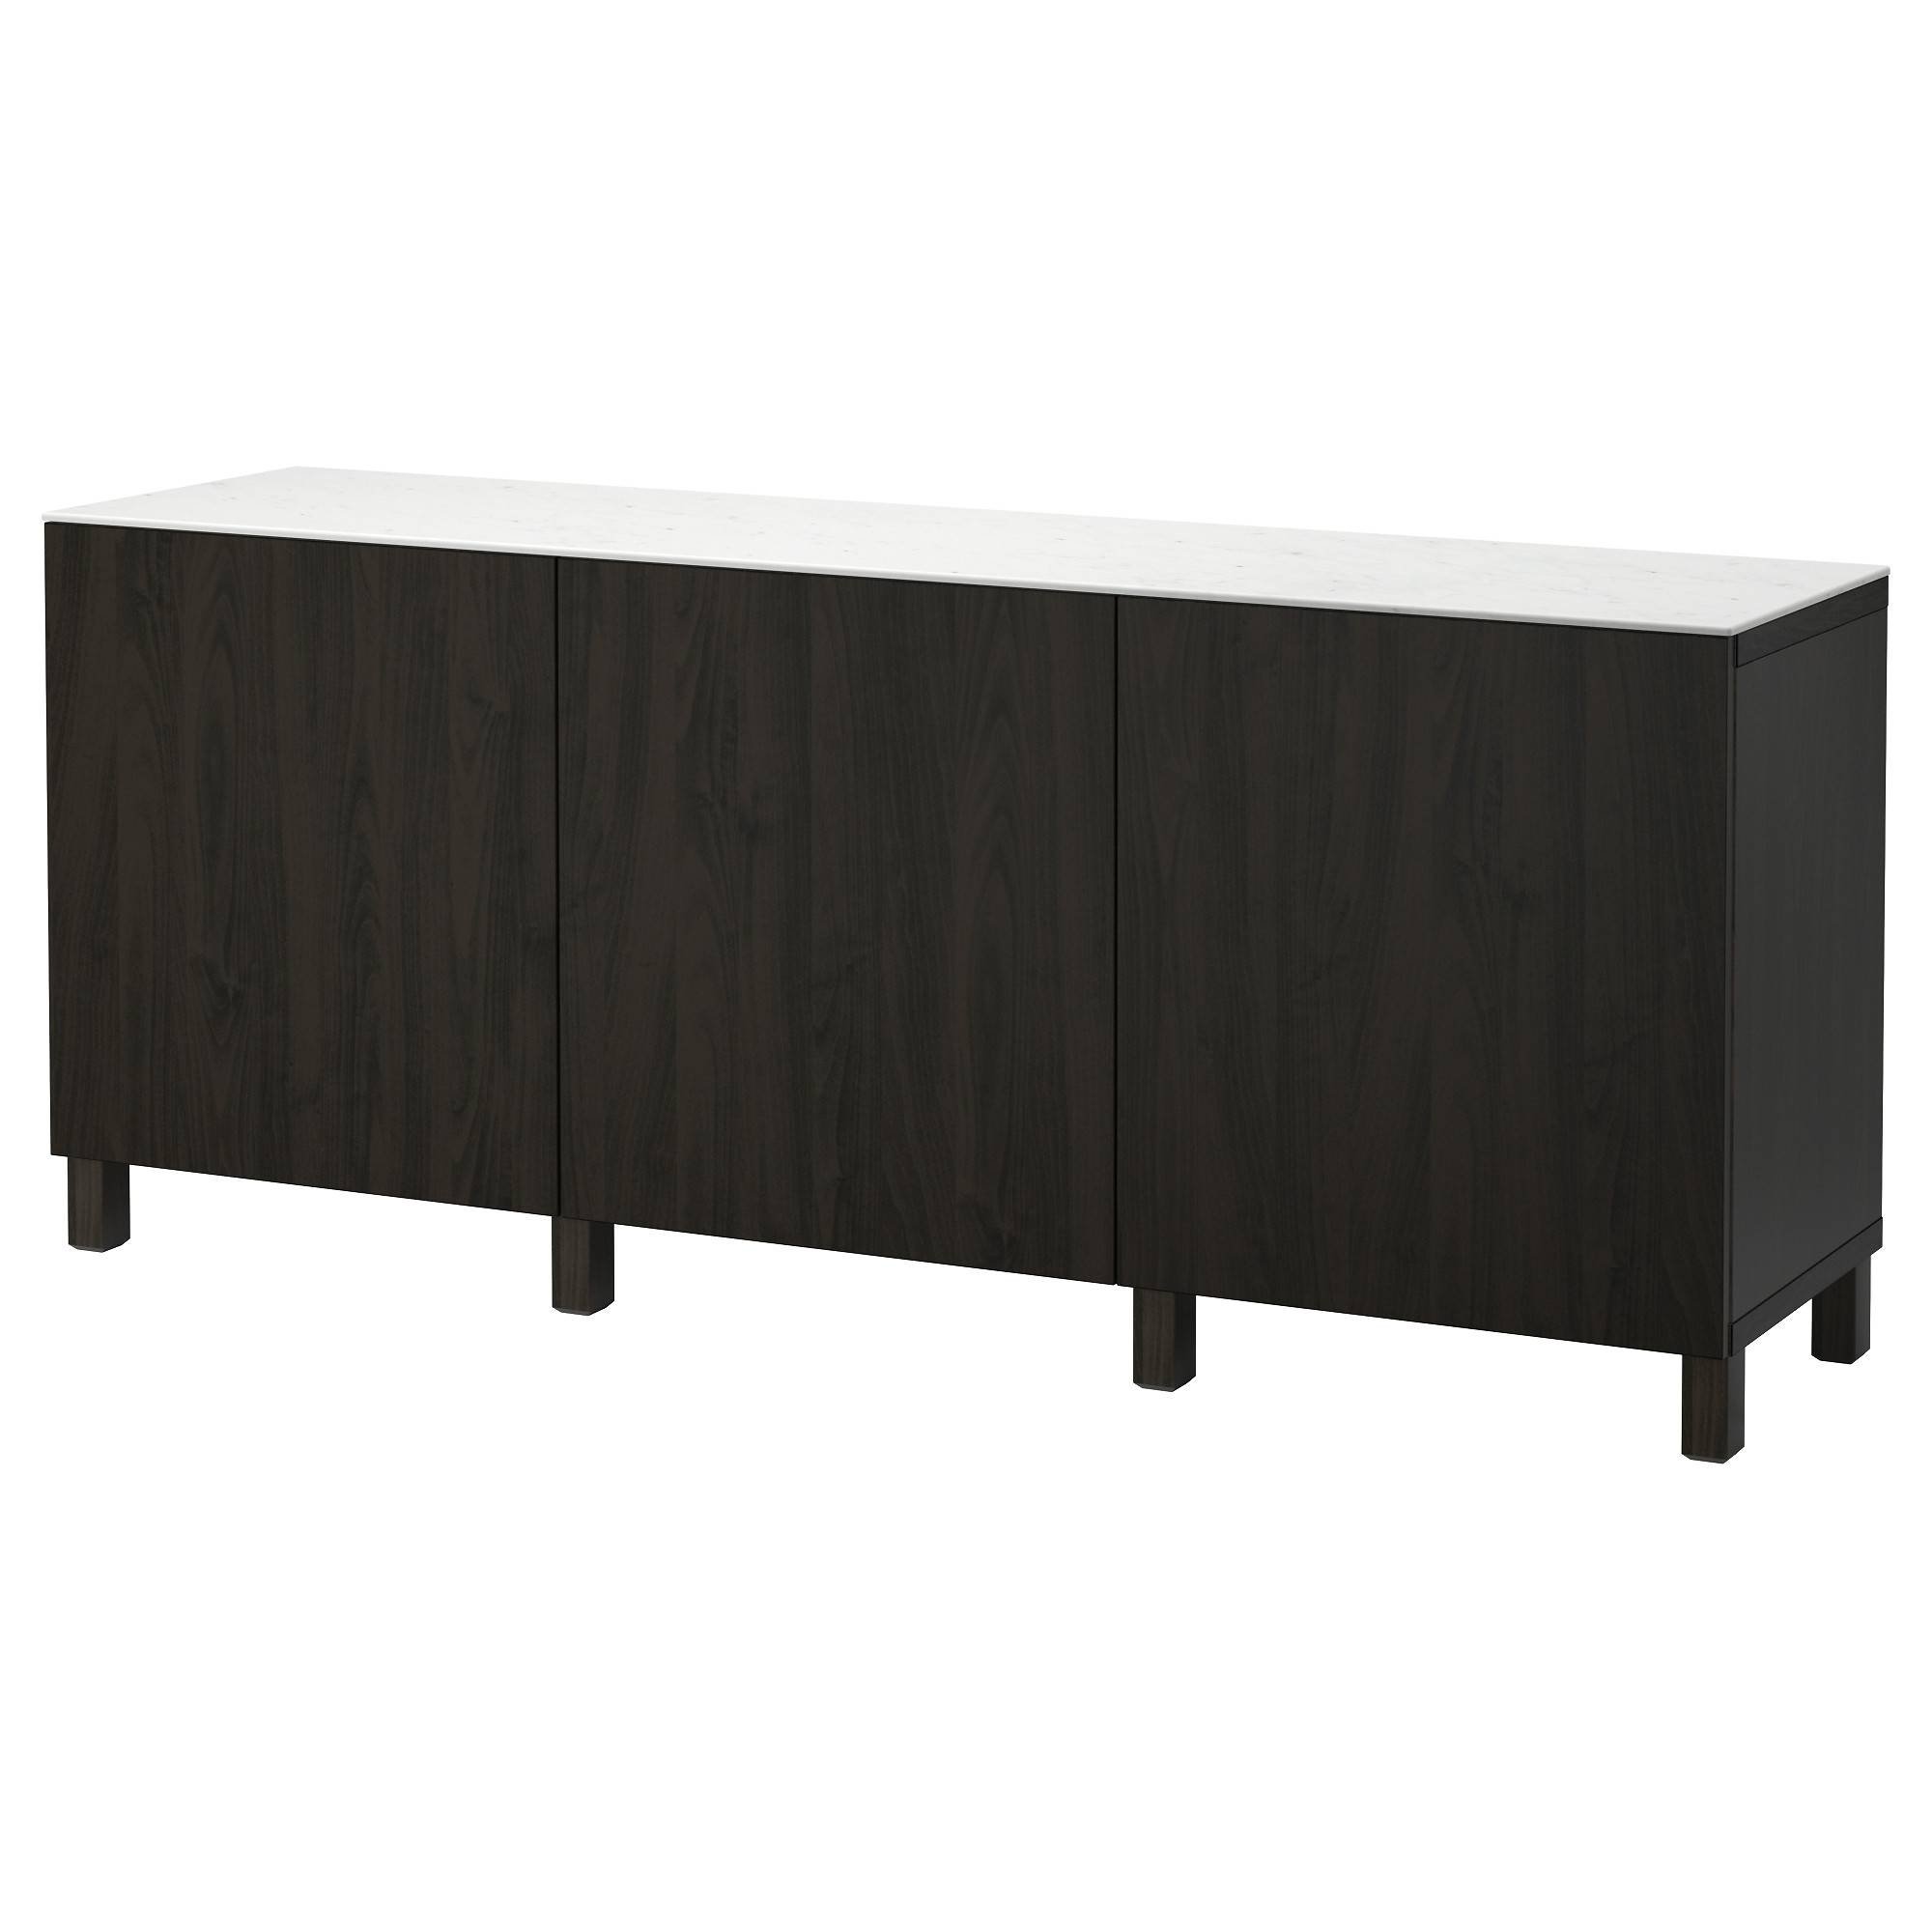 Buffet Tables & Sideboards - Ikea with regard to Grey Wood Sideboards (Image 5 of 30)